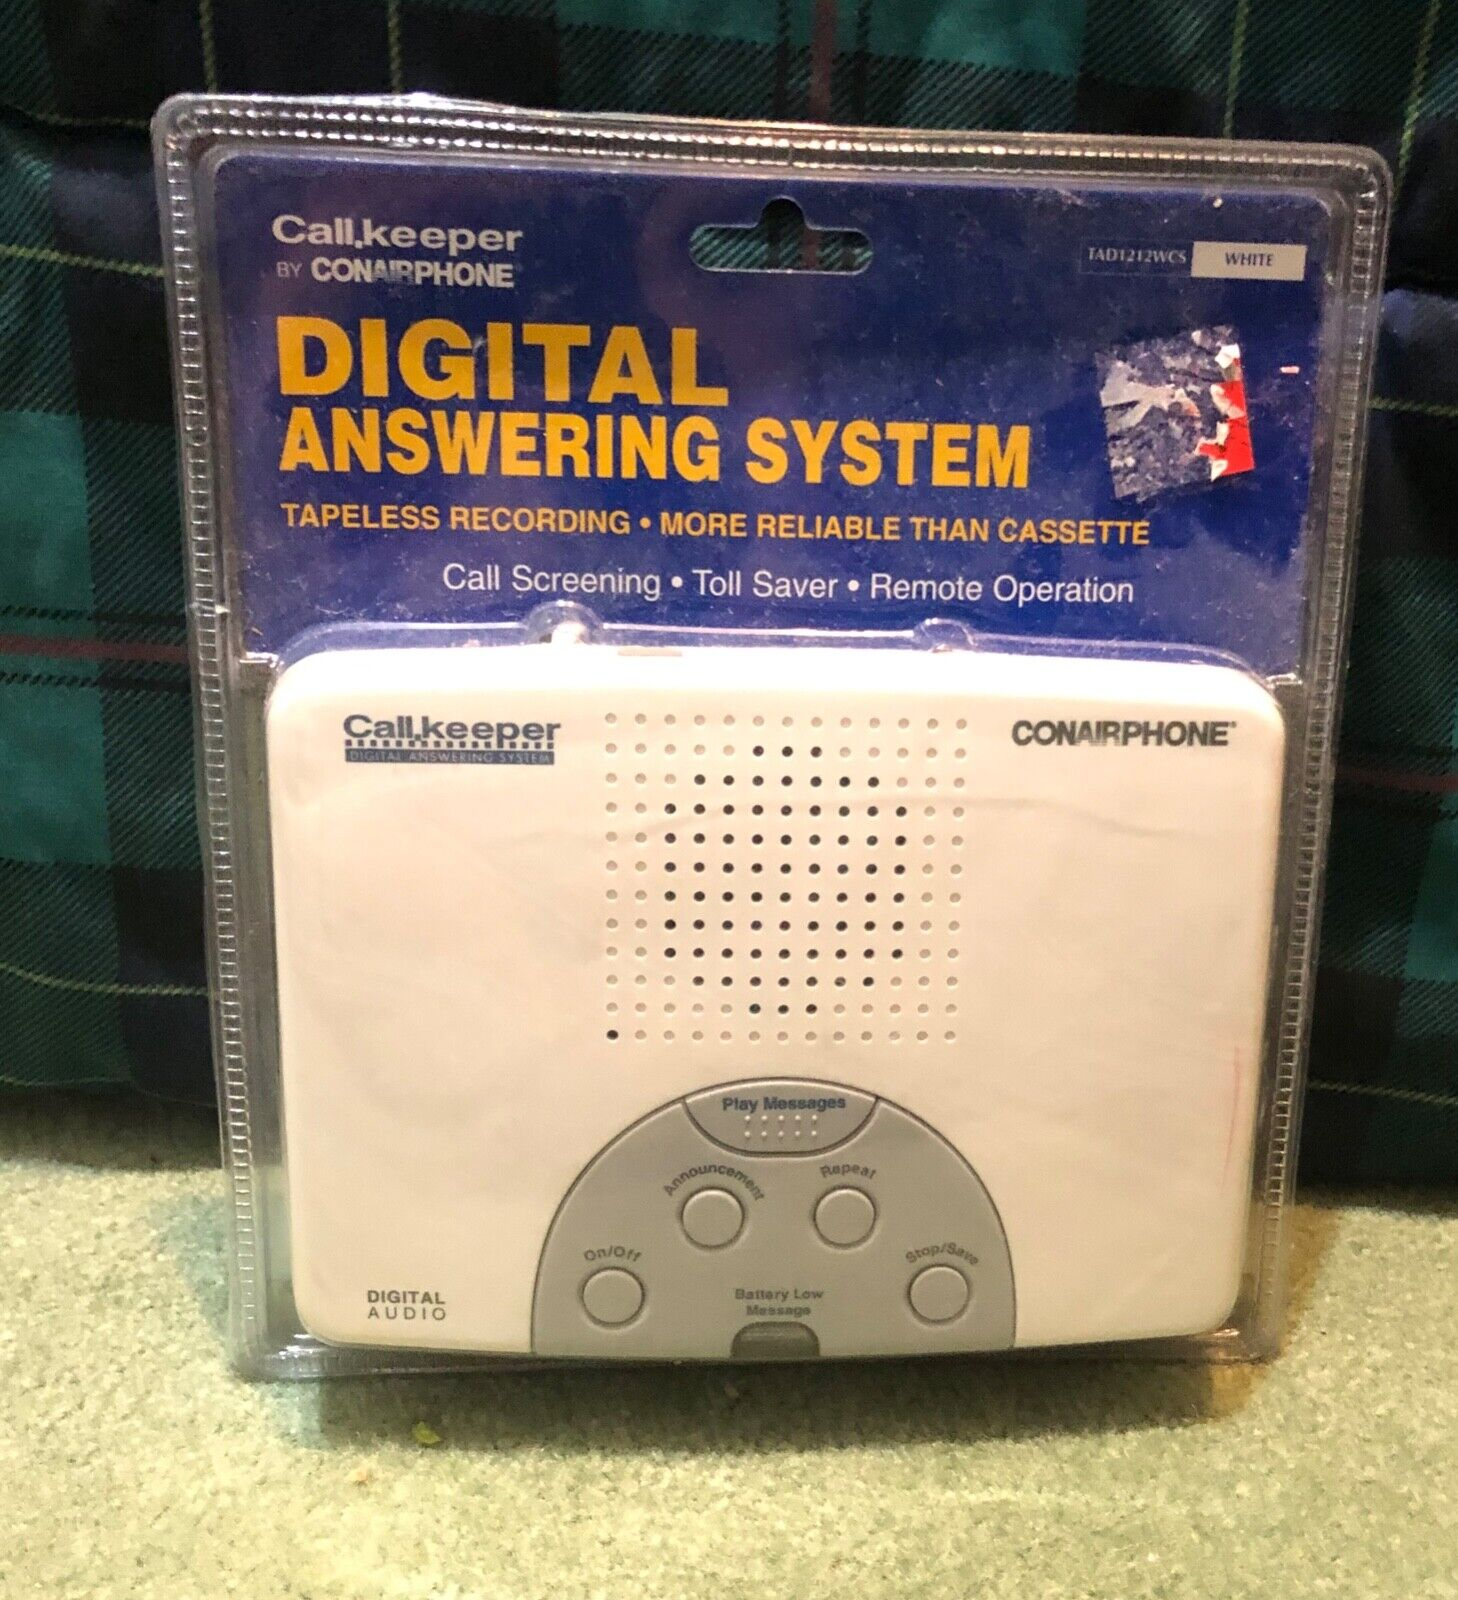 Call Keeper Digital Answering System